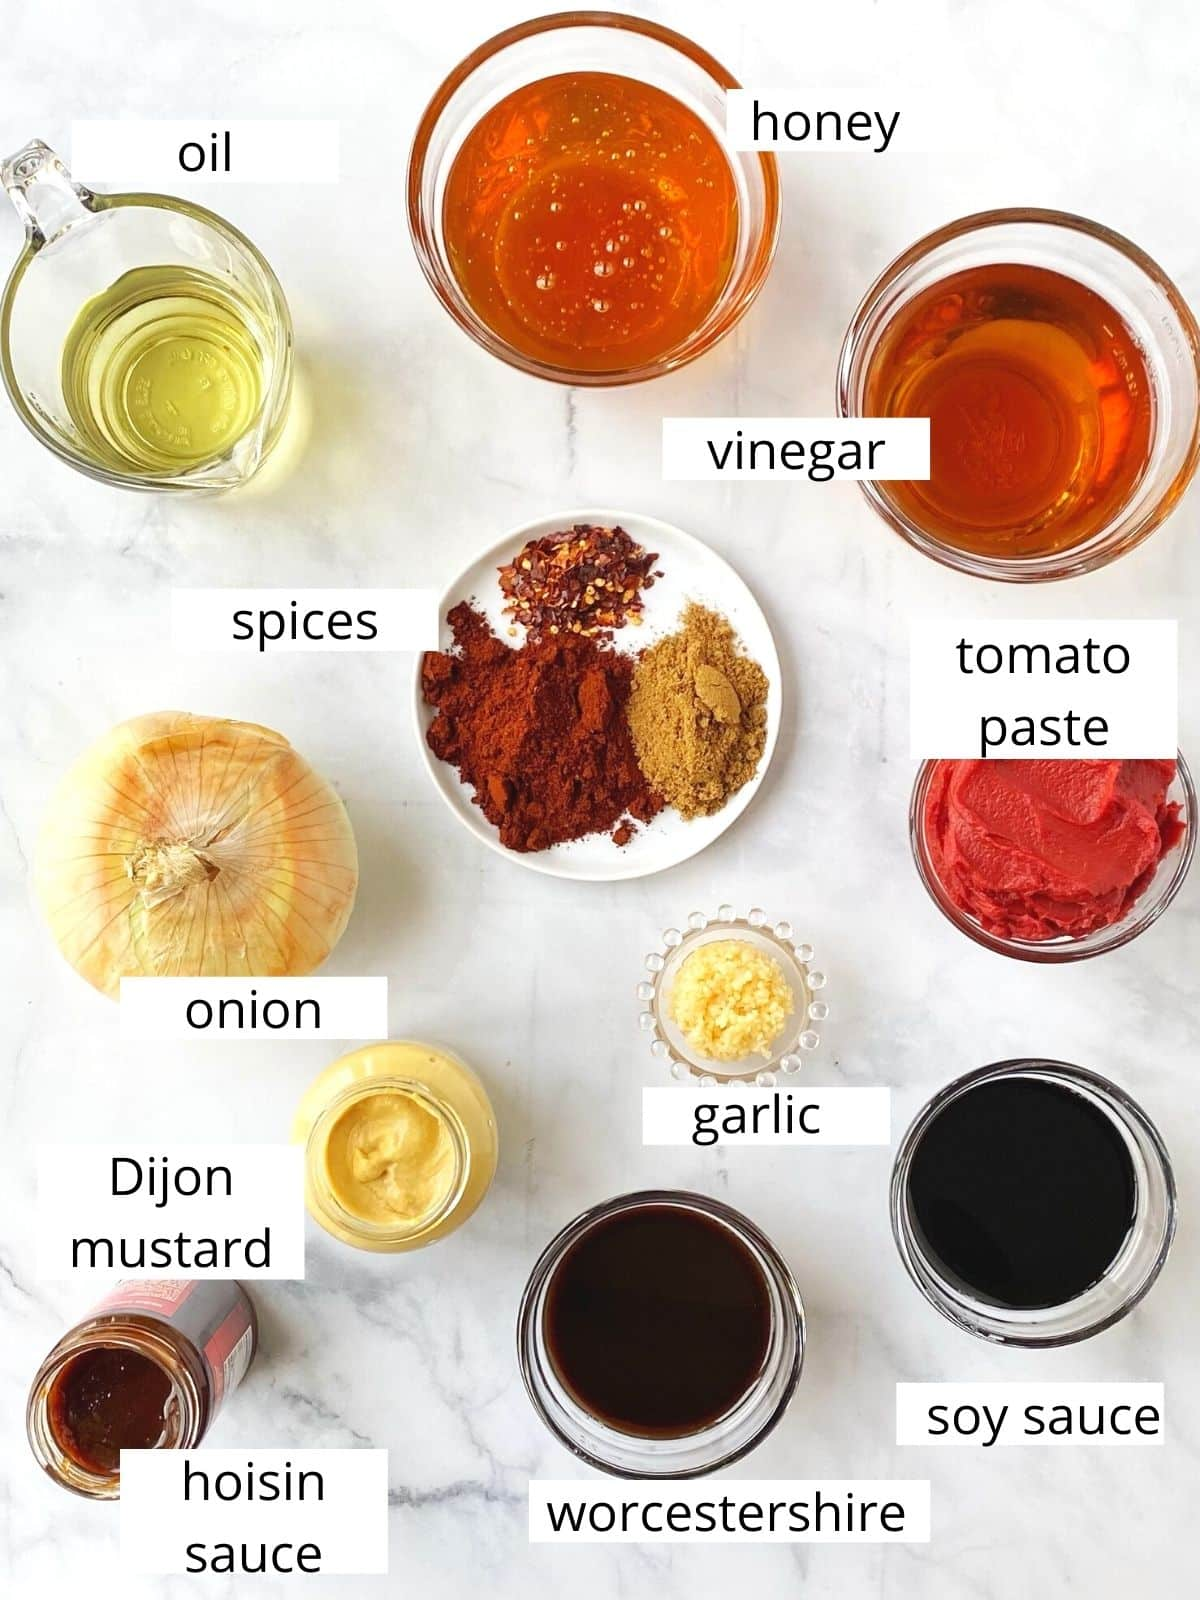 array of ingredients - vinegar, honey, soy, worcestershire, tomato paste, spices, hoisin, mustard, onion, garlic, and oil